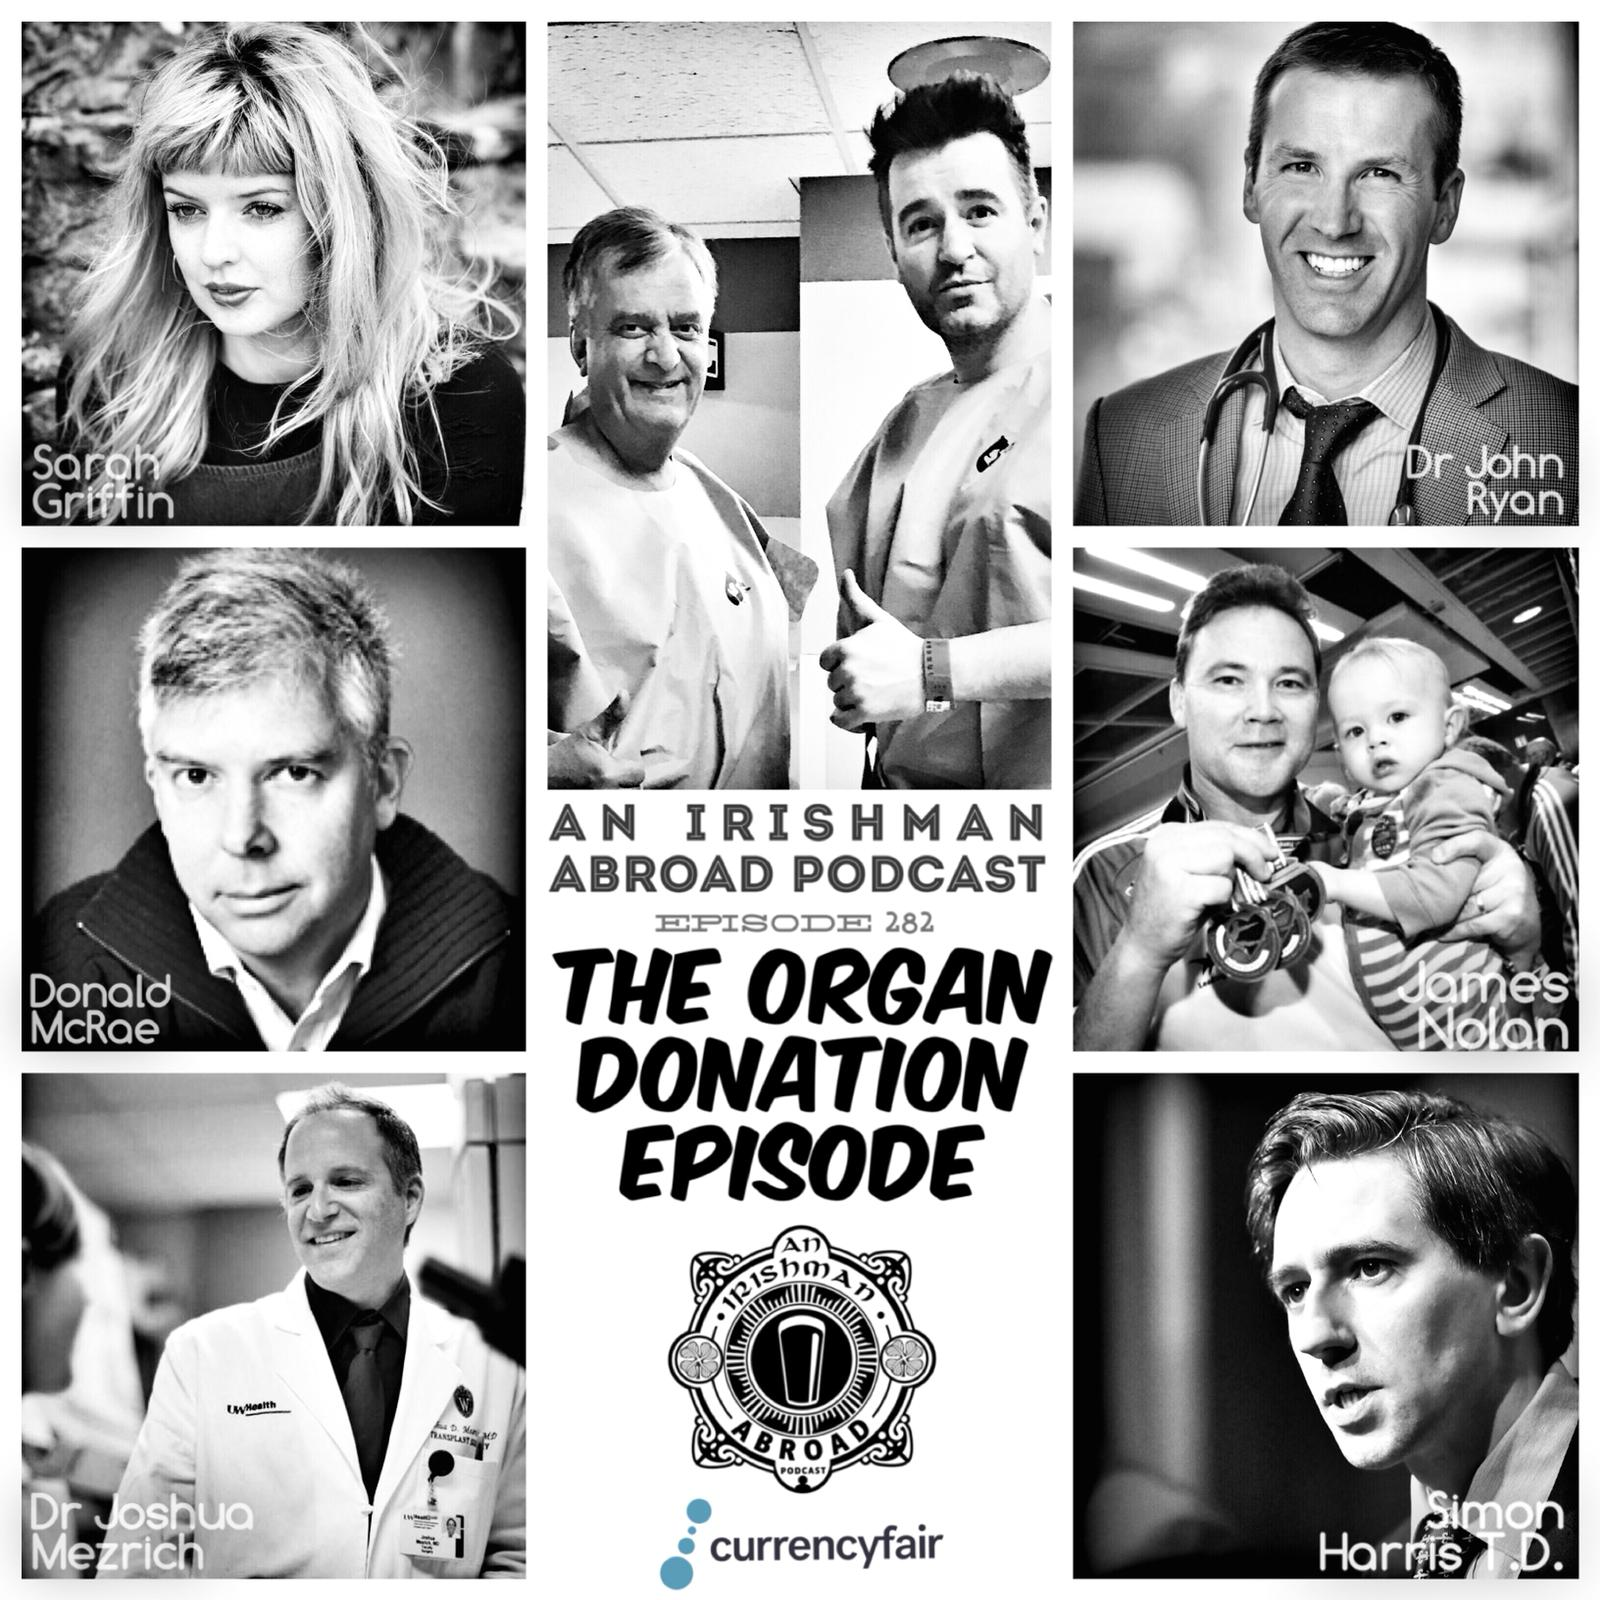 The Organ Donation Episode: Episode 282